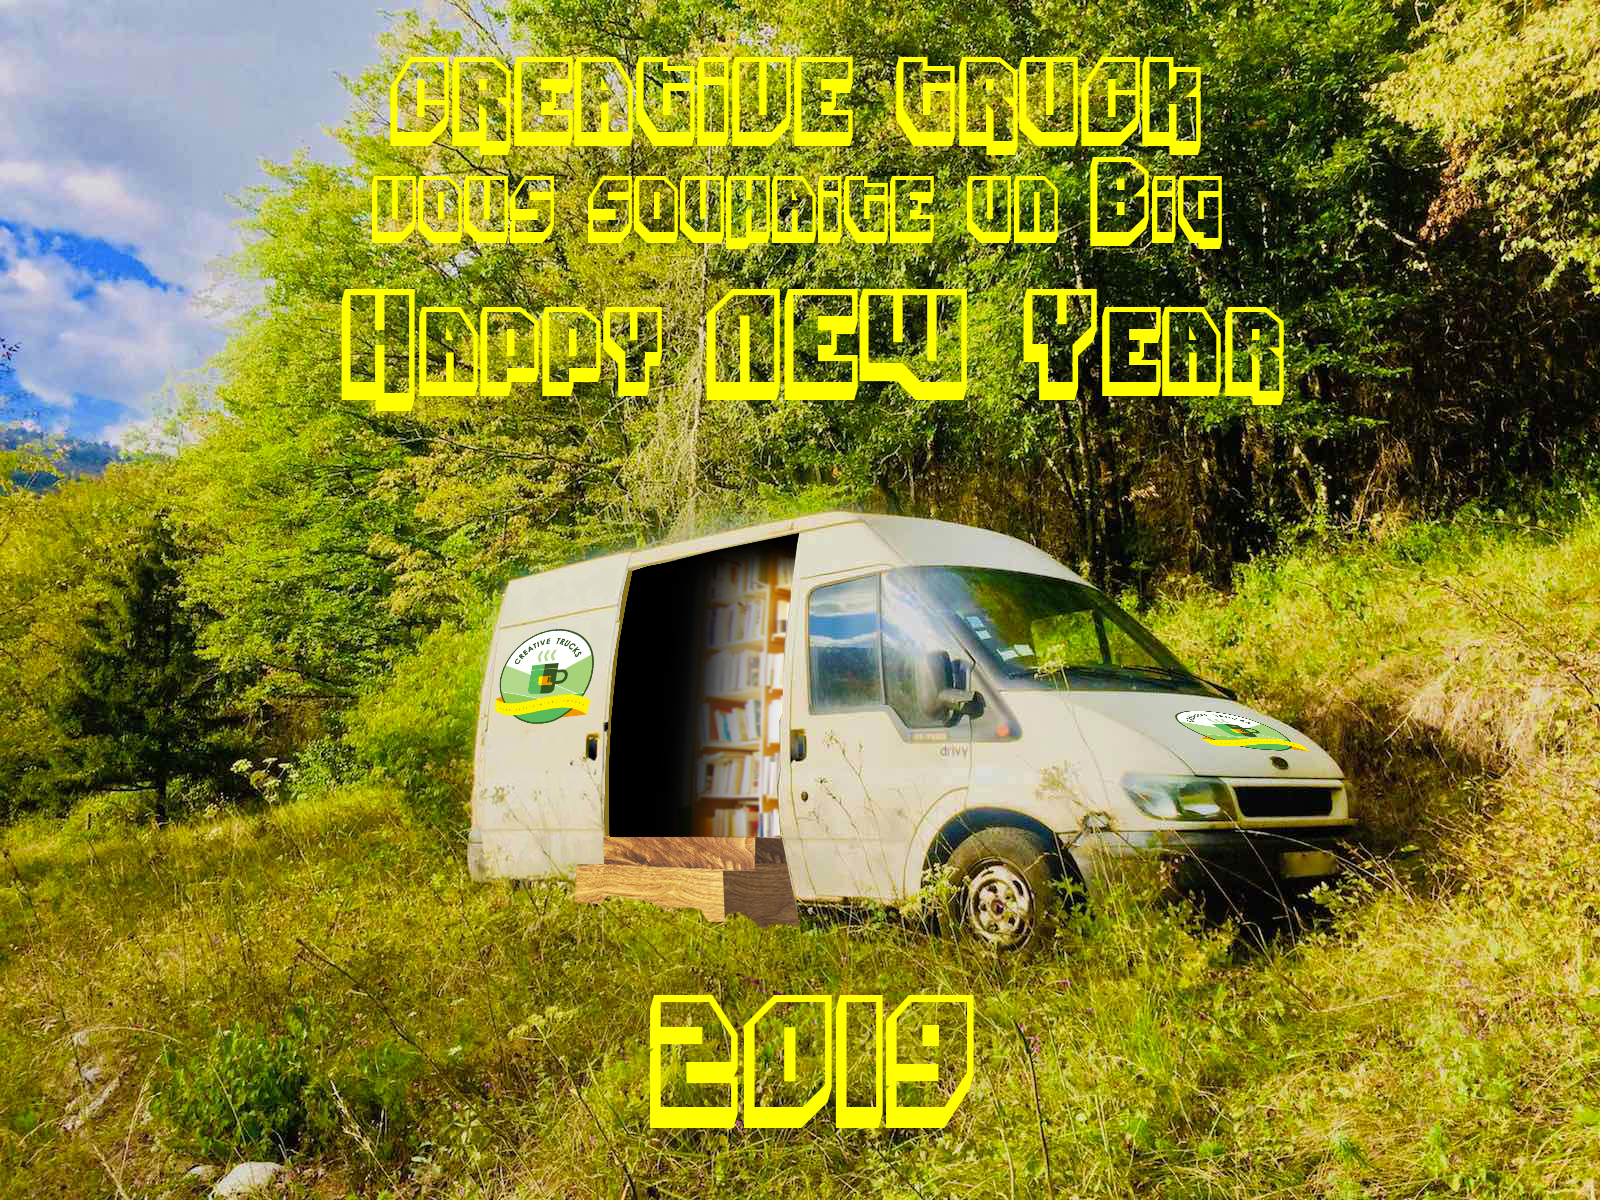 Creative Truck vous souhaite un Big Happy New Year 2019